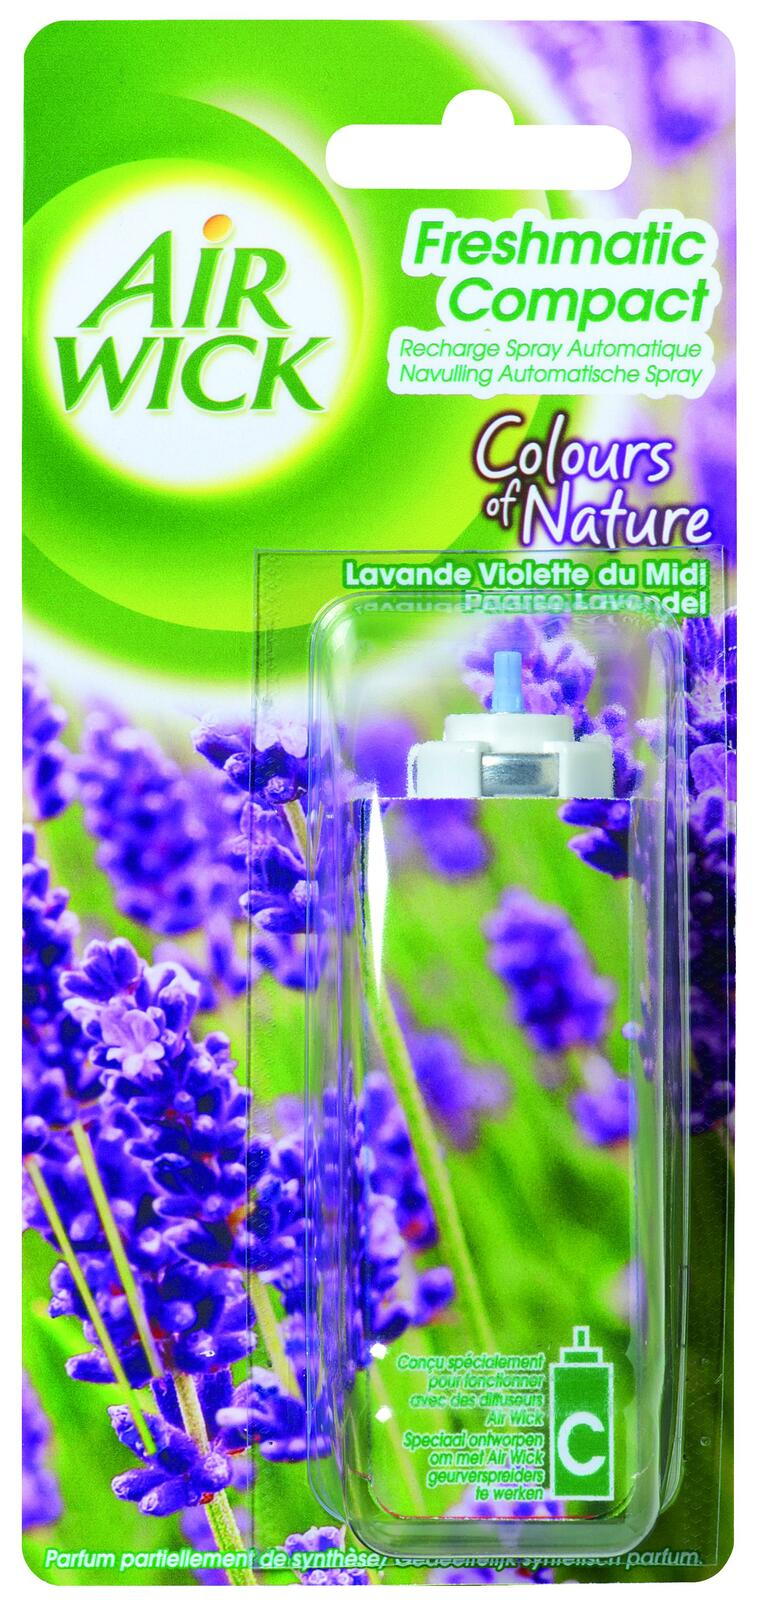 Airwick Freshmatic Compact navulling lavendel